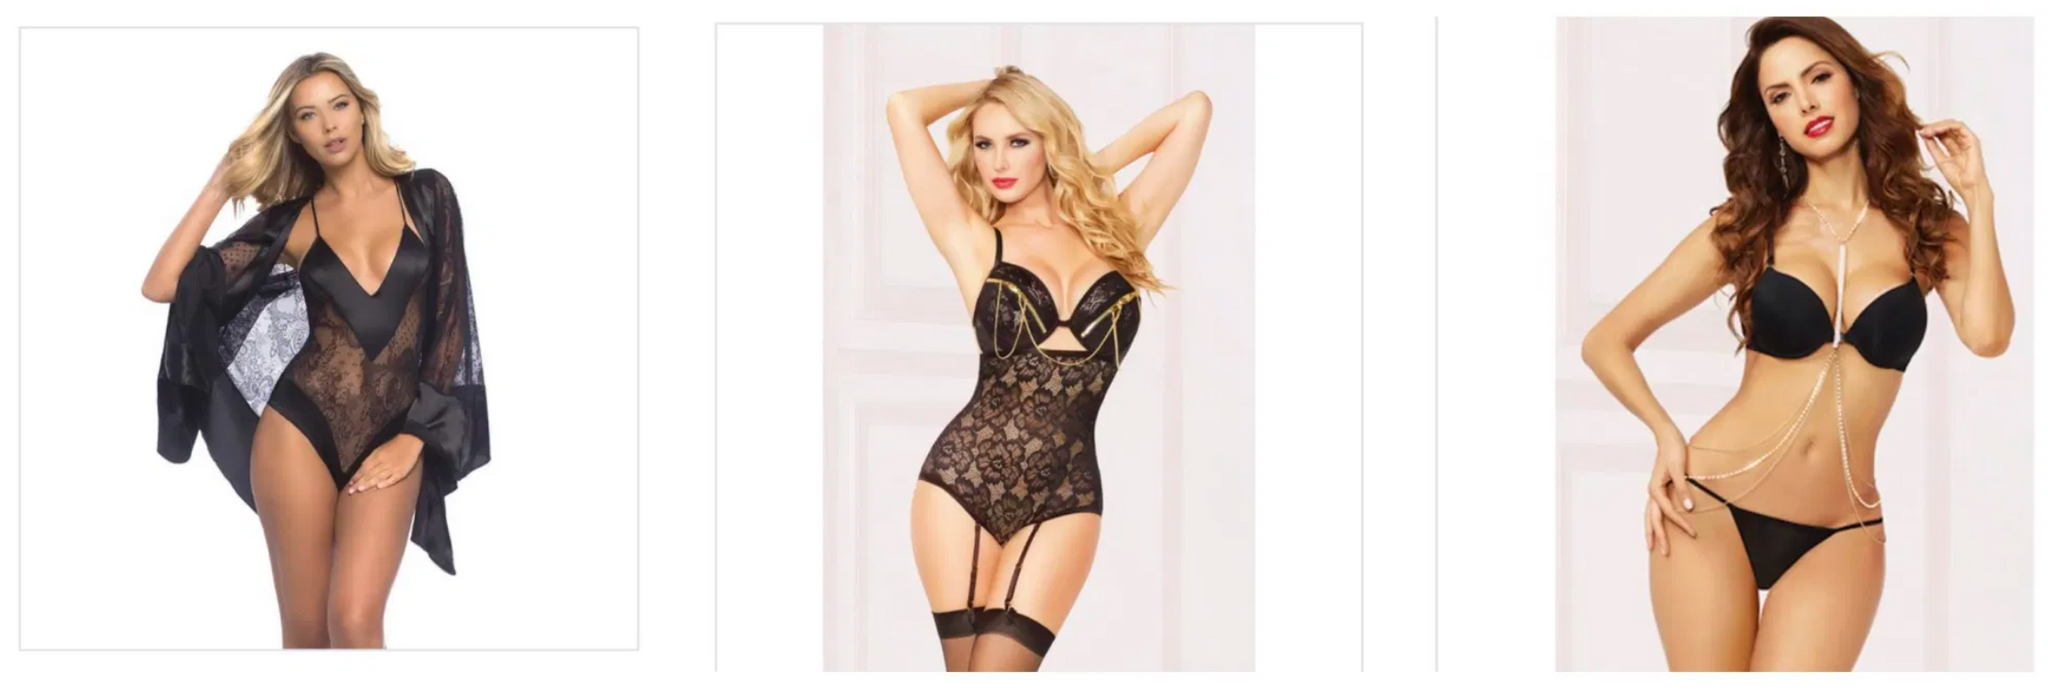 Make Sure To Buy The Best Lingerie..